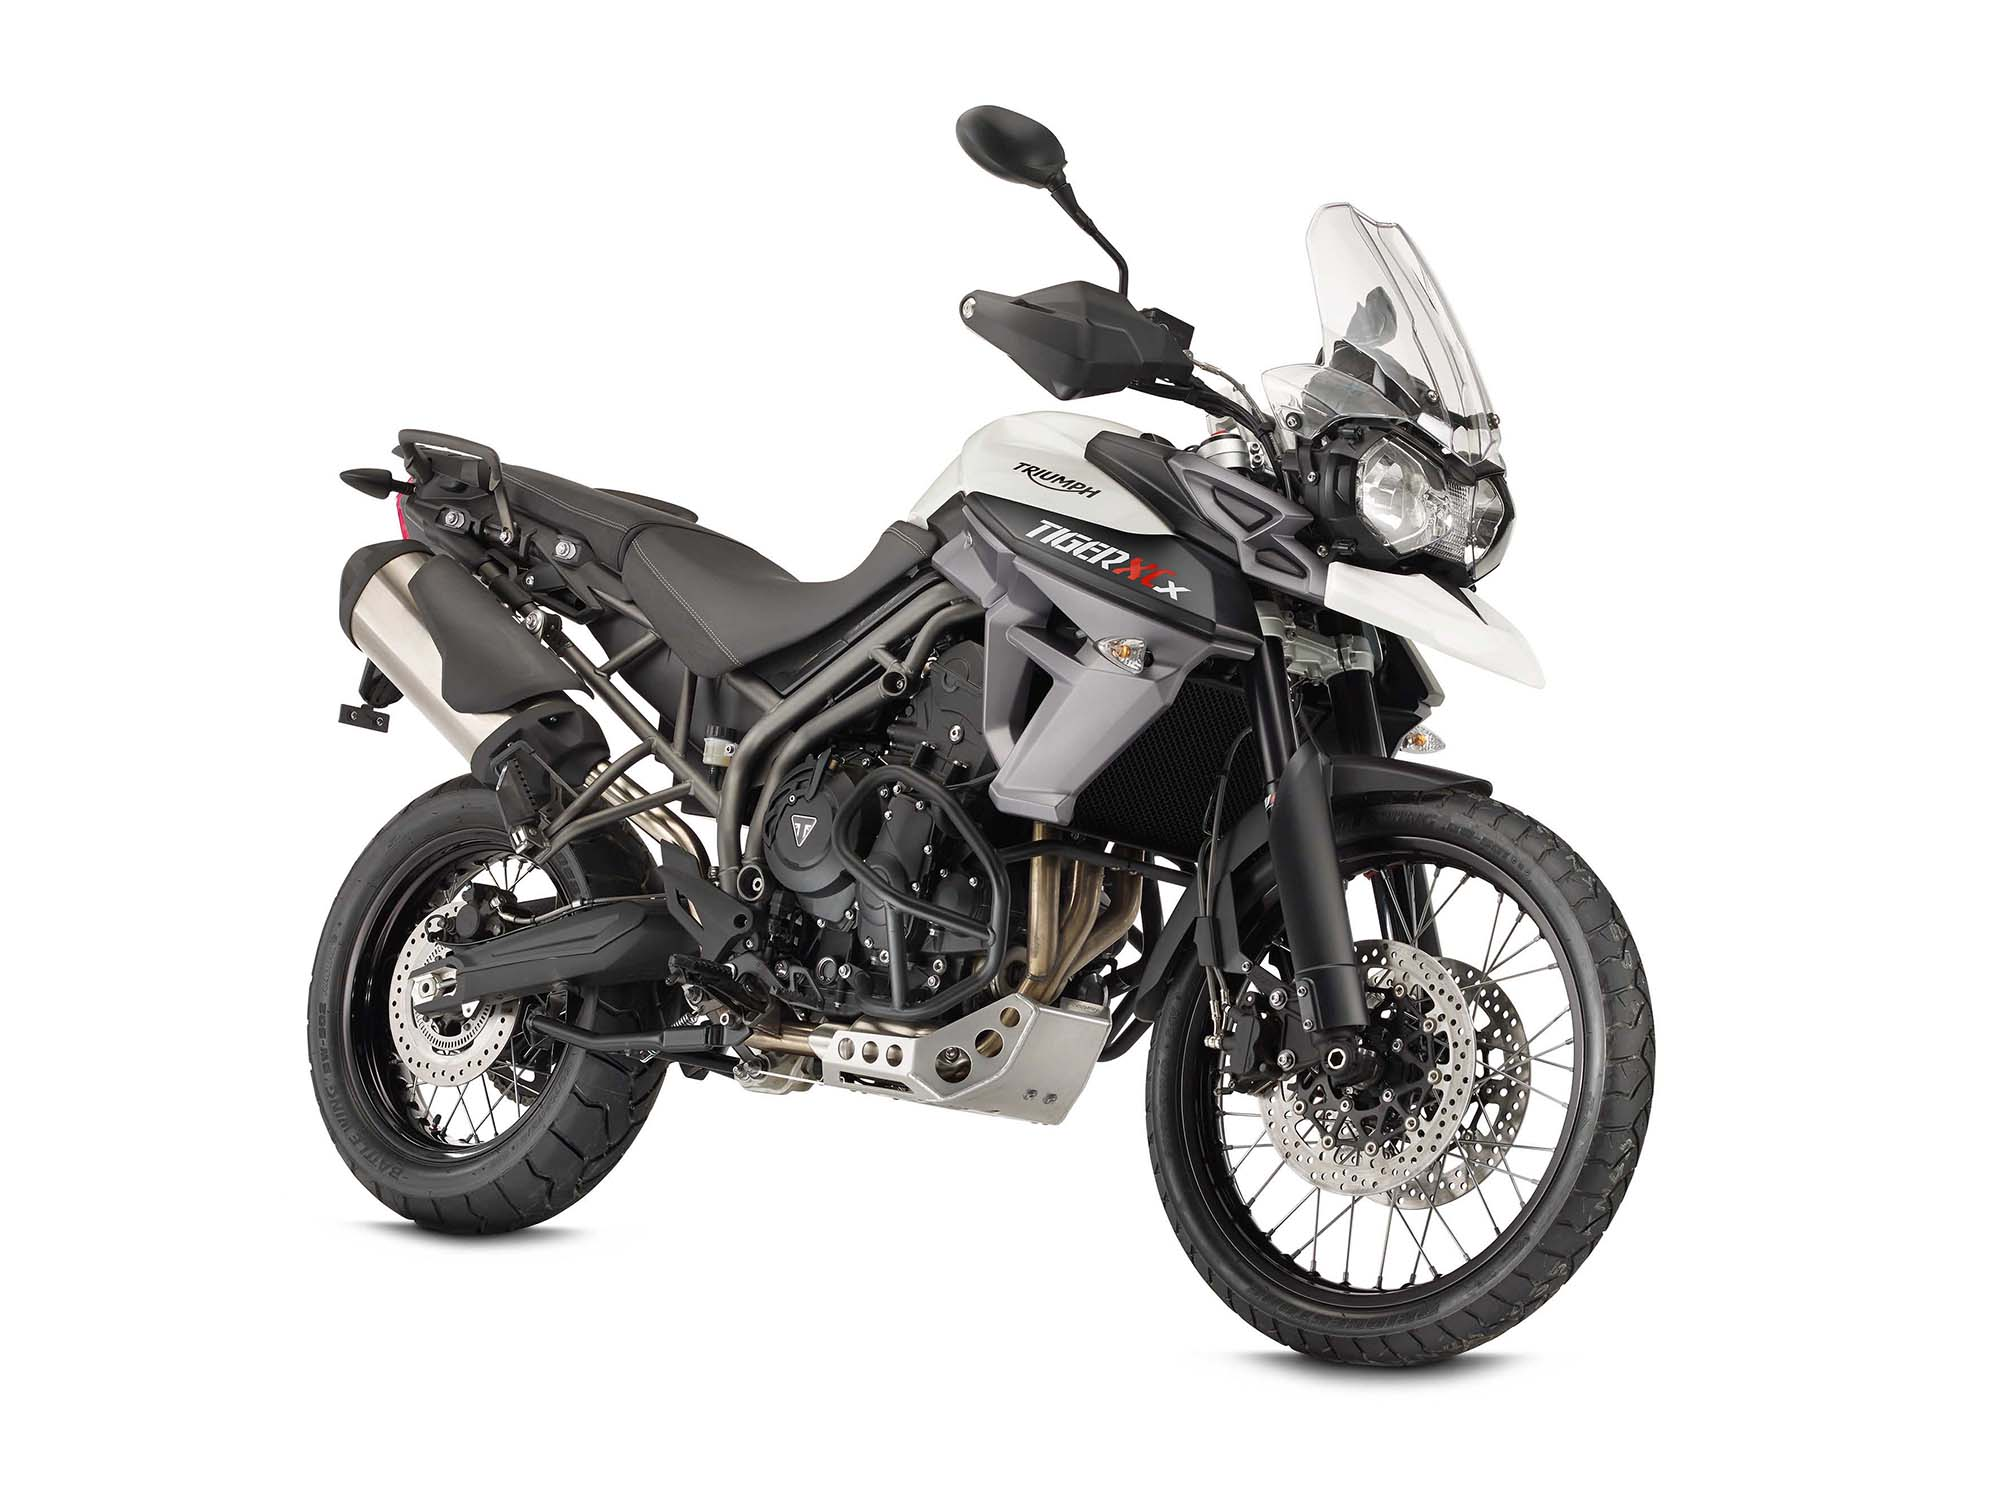 2015 Triumph Tiger 800 Xcx Another Flavor Of Adv